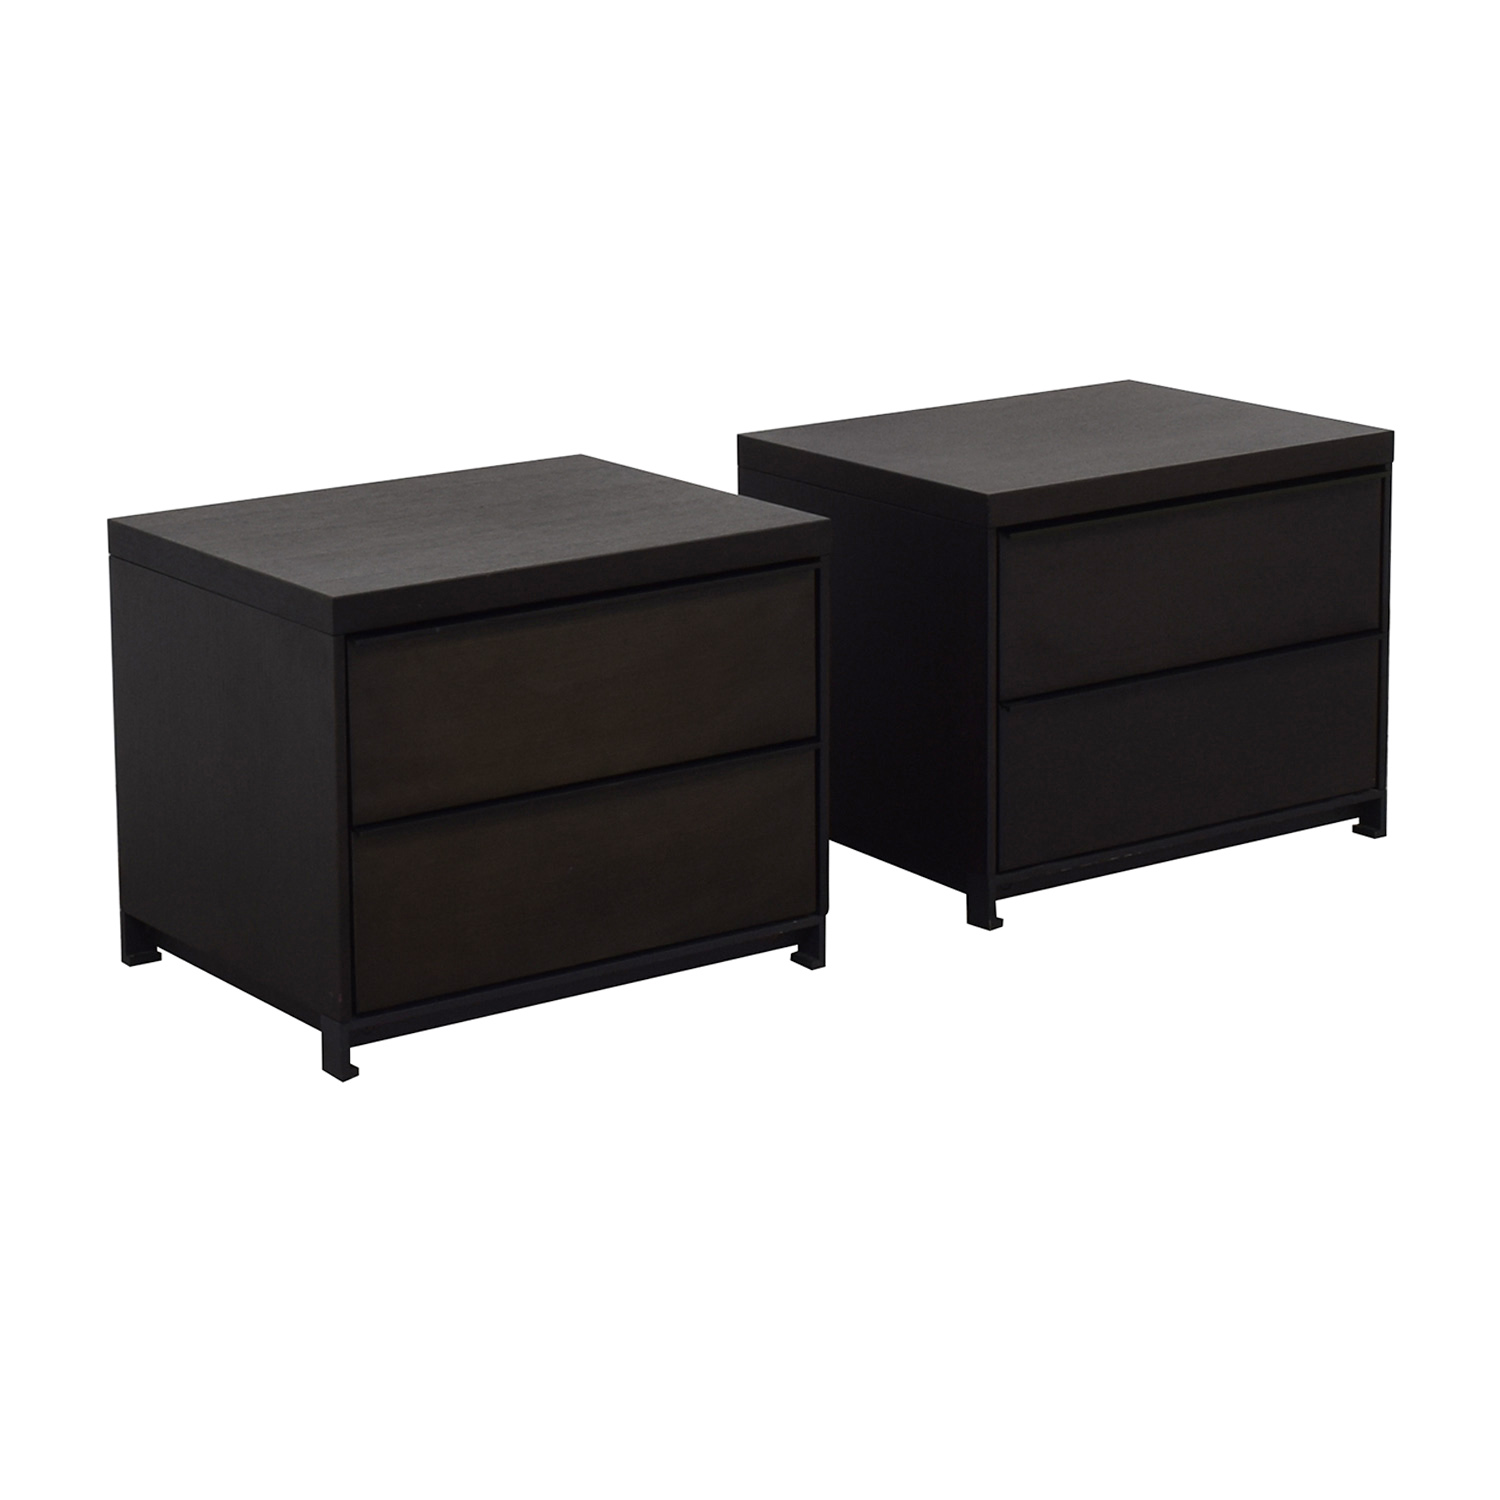 Tui Lifestyle Grey Oak Two Drawer Night Stands for sale